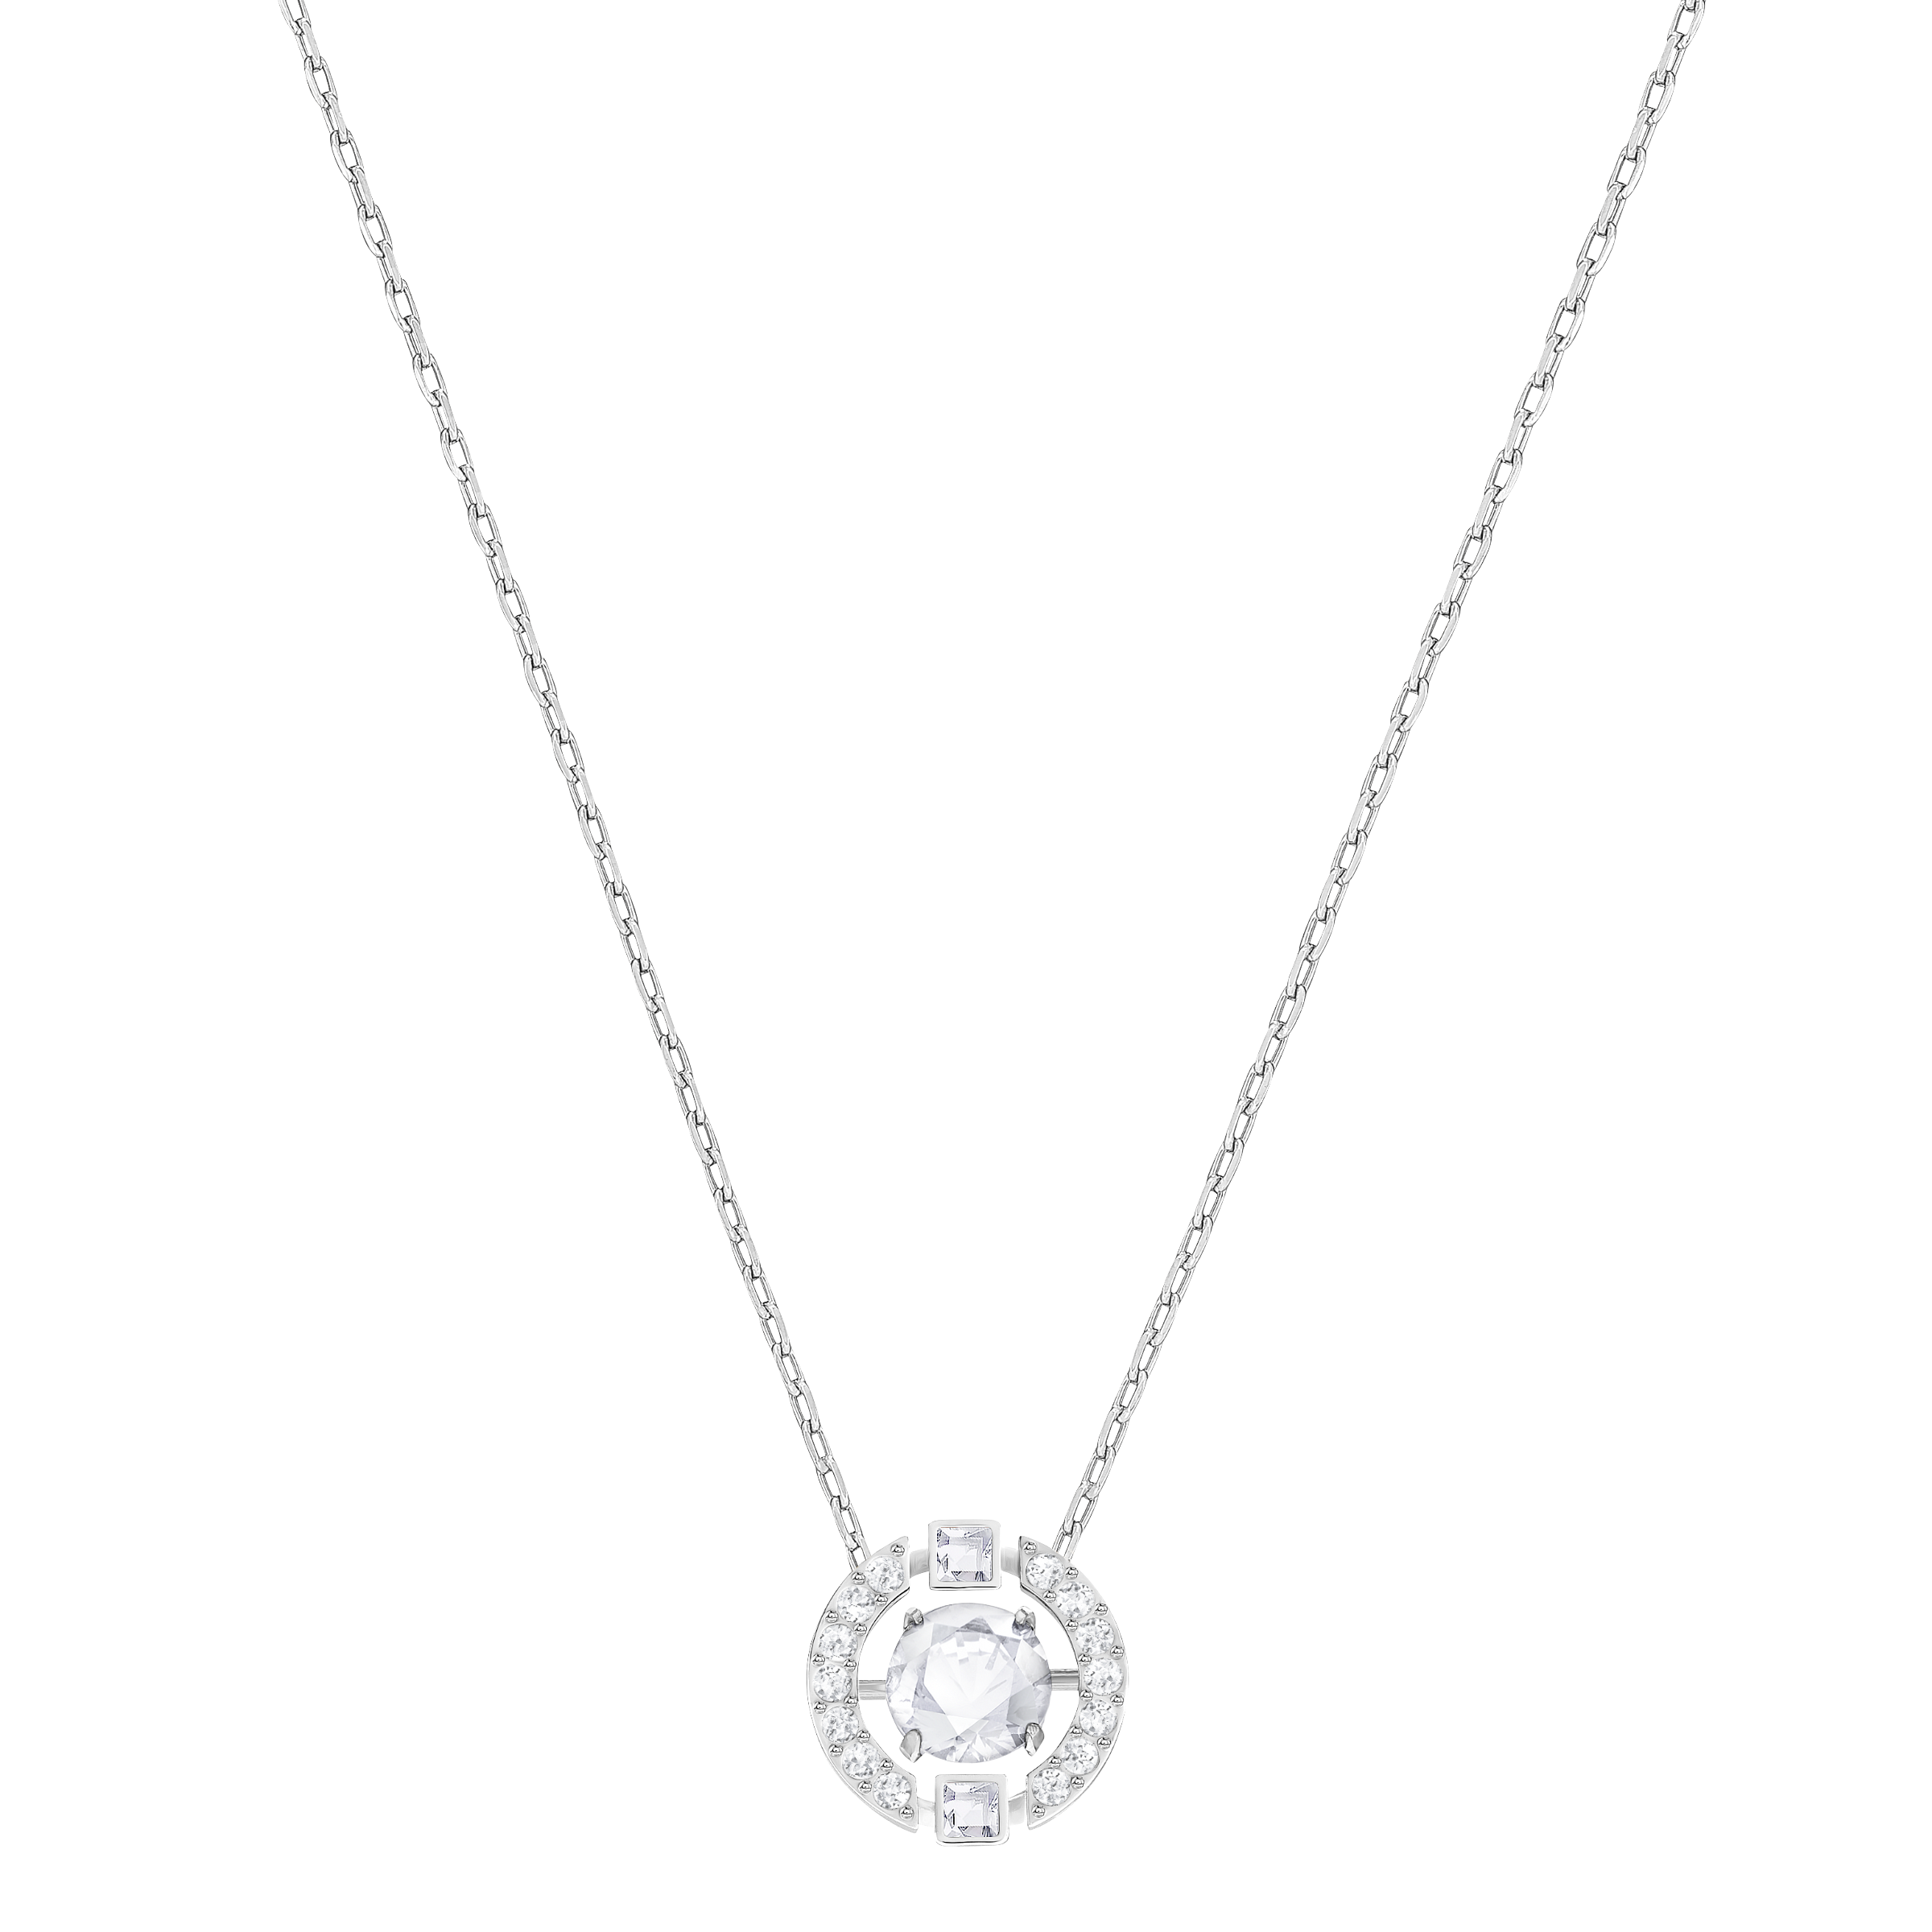 Sparkling Dance Round Necklace, White, Rhodium Plated